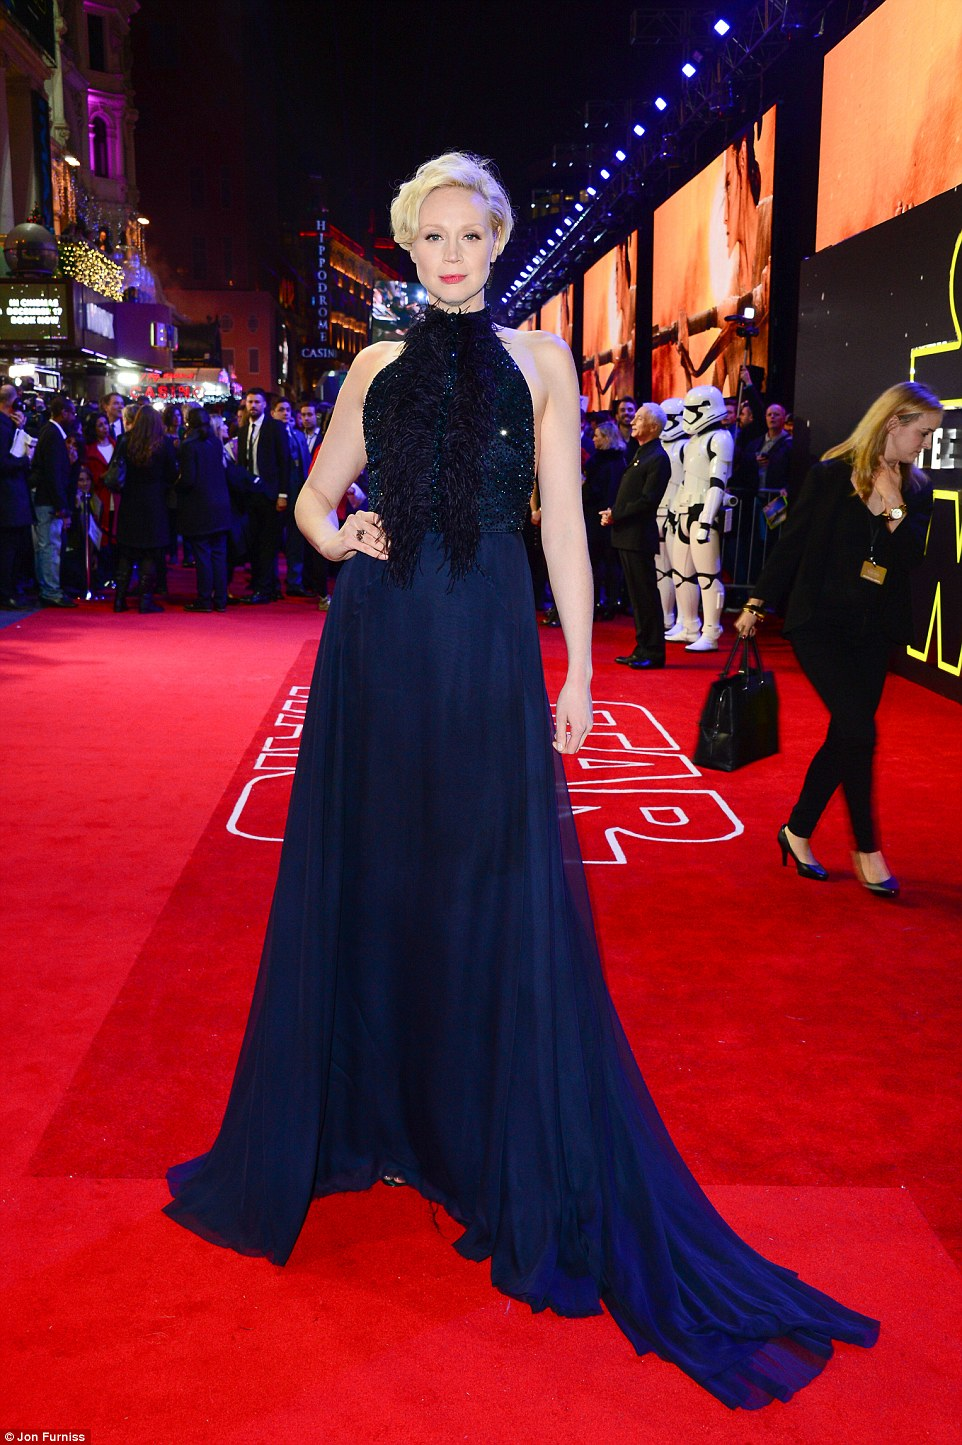 Gwendoline Christie in another dark and sparkly gown. We LOVE her.